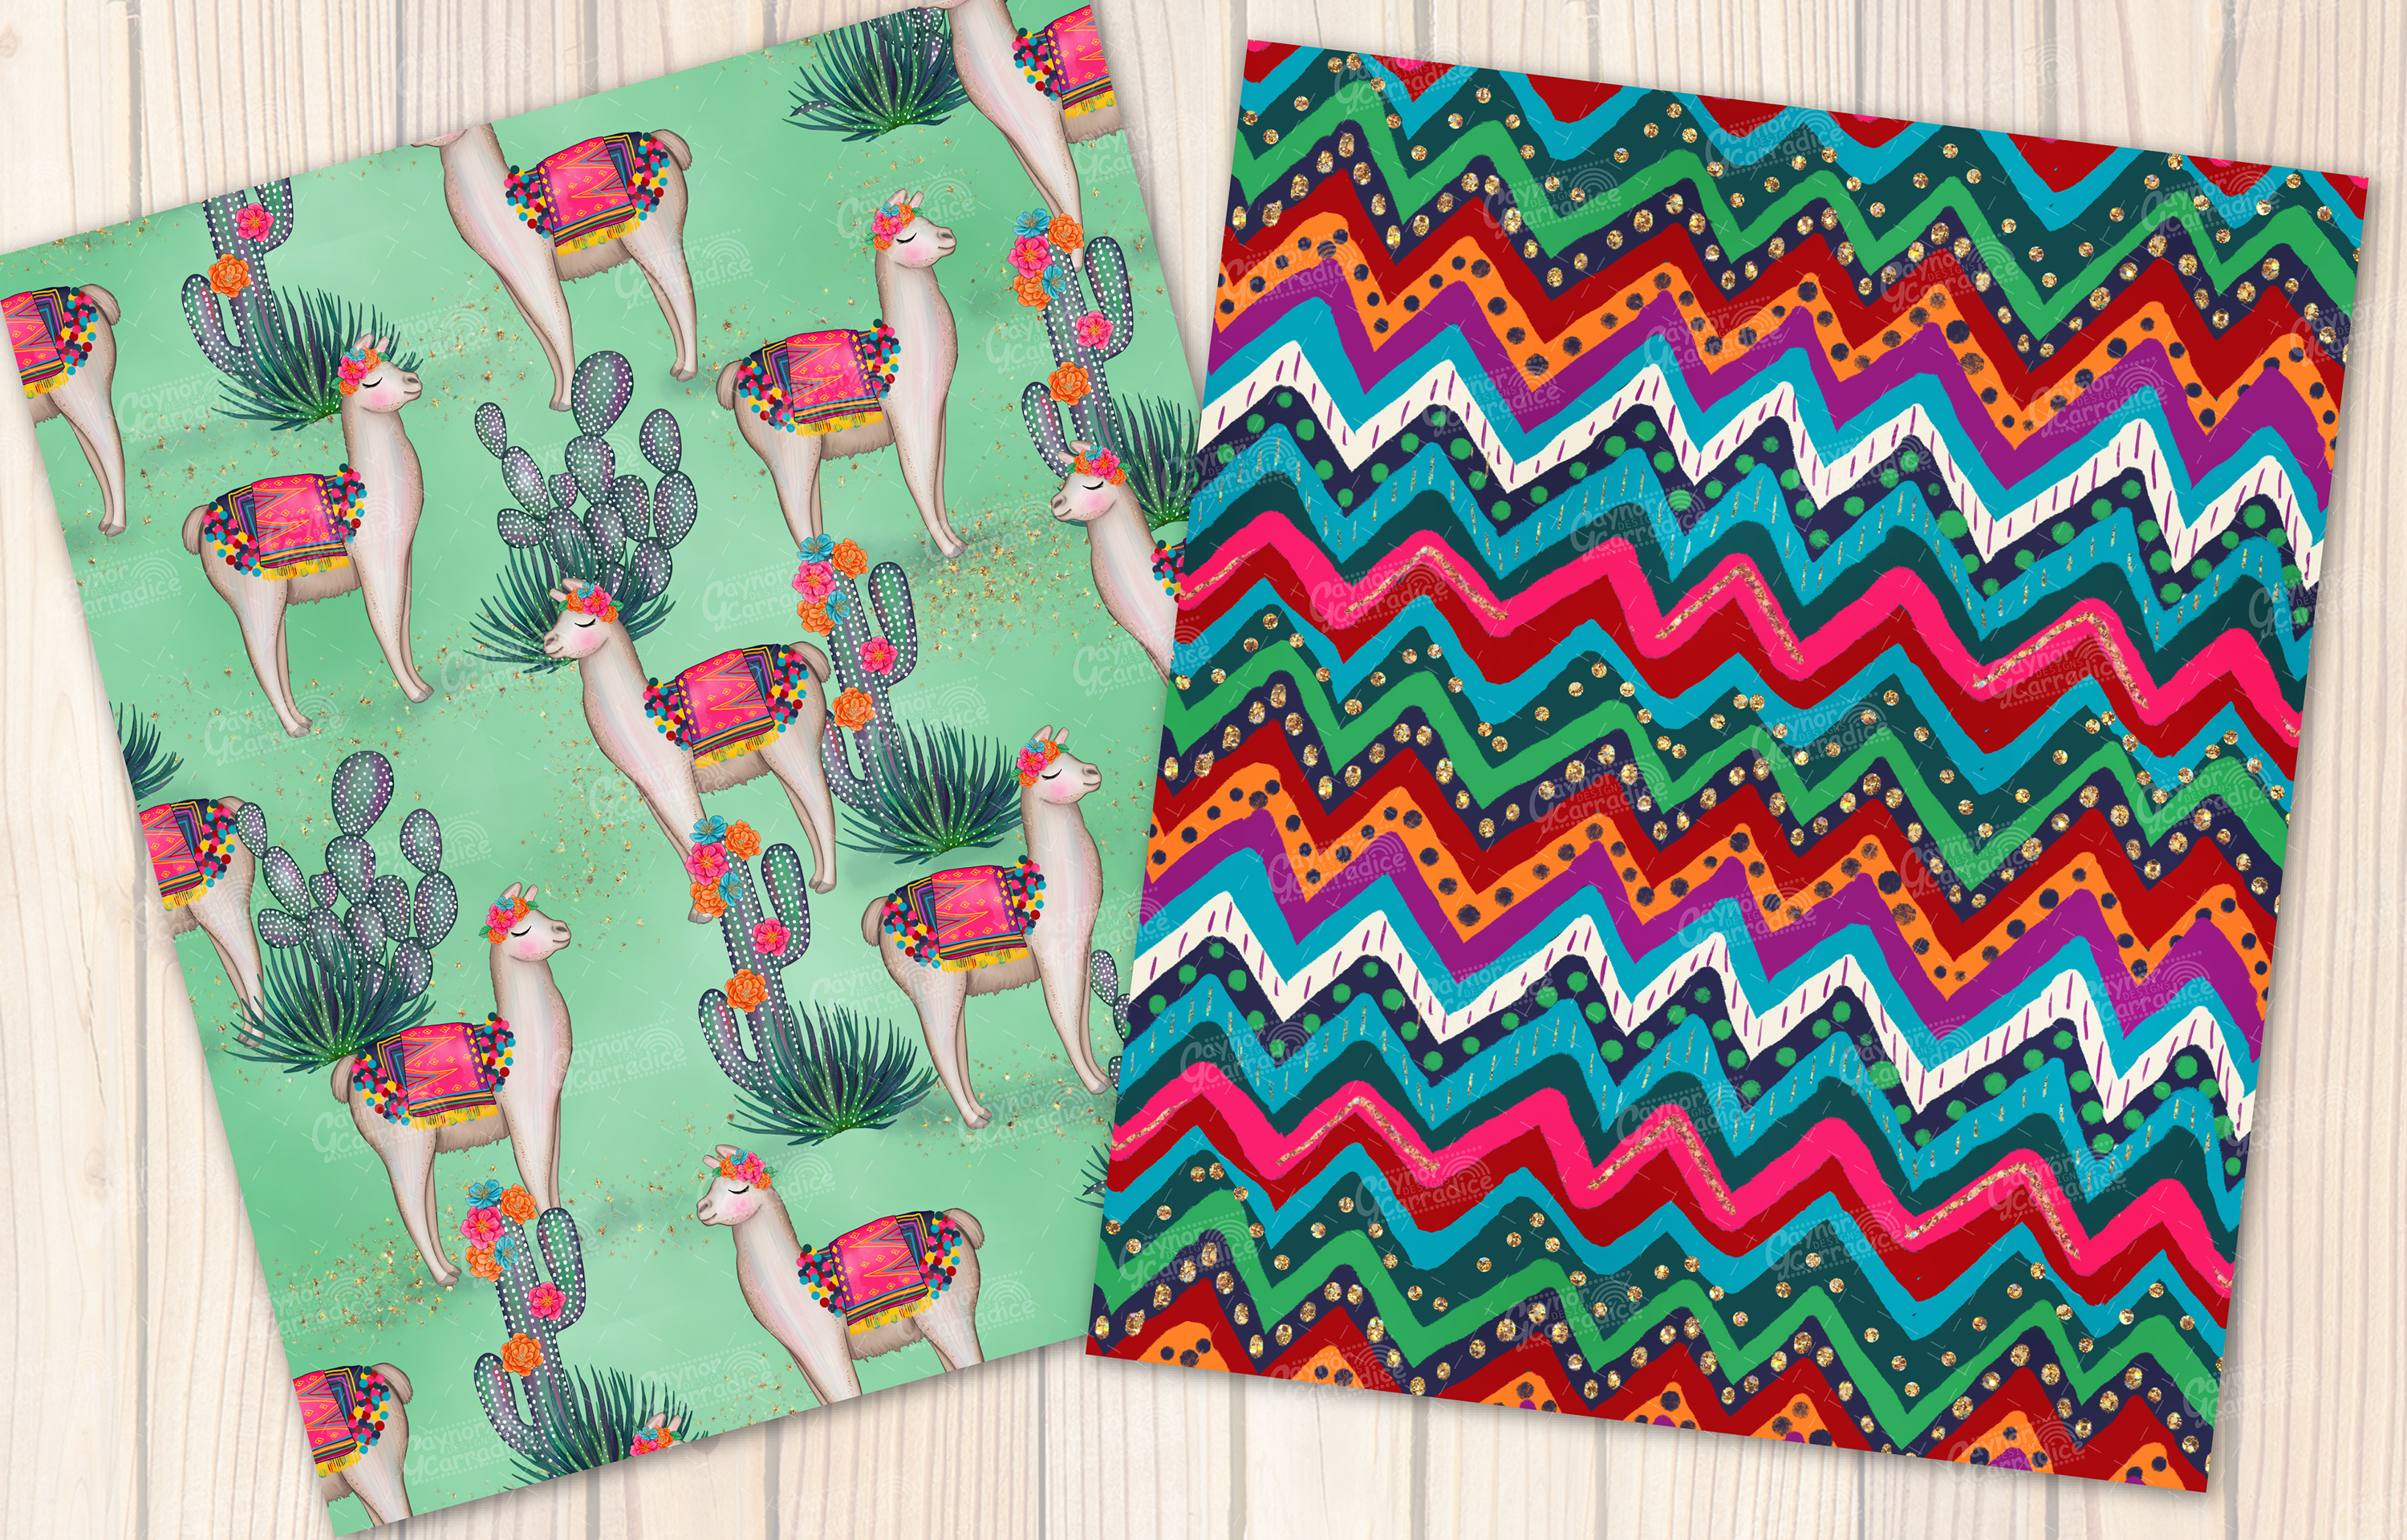 Lola - Mecian cinco de mayo Seamless Pattern collection example image 3